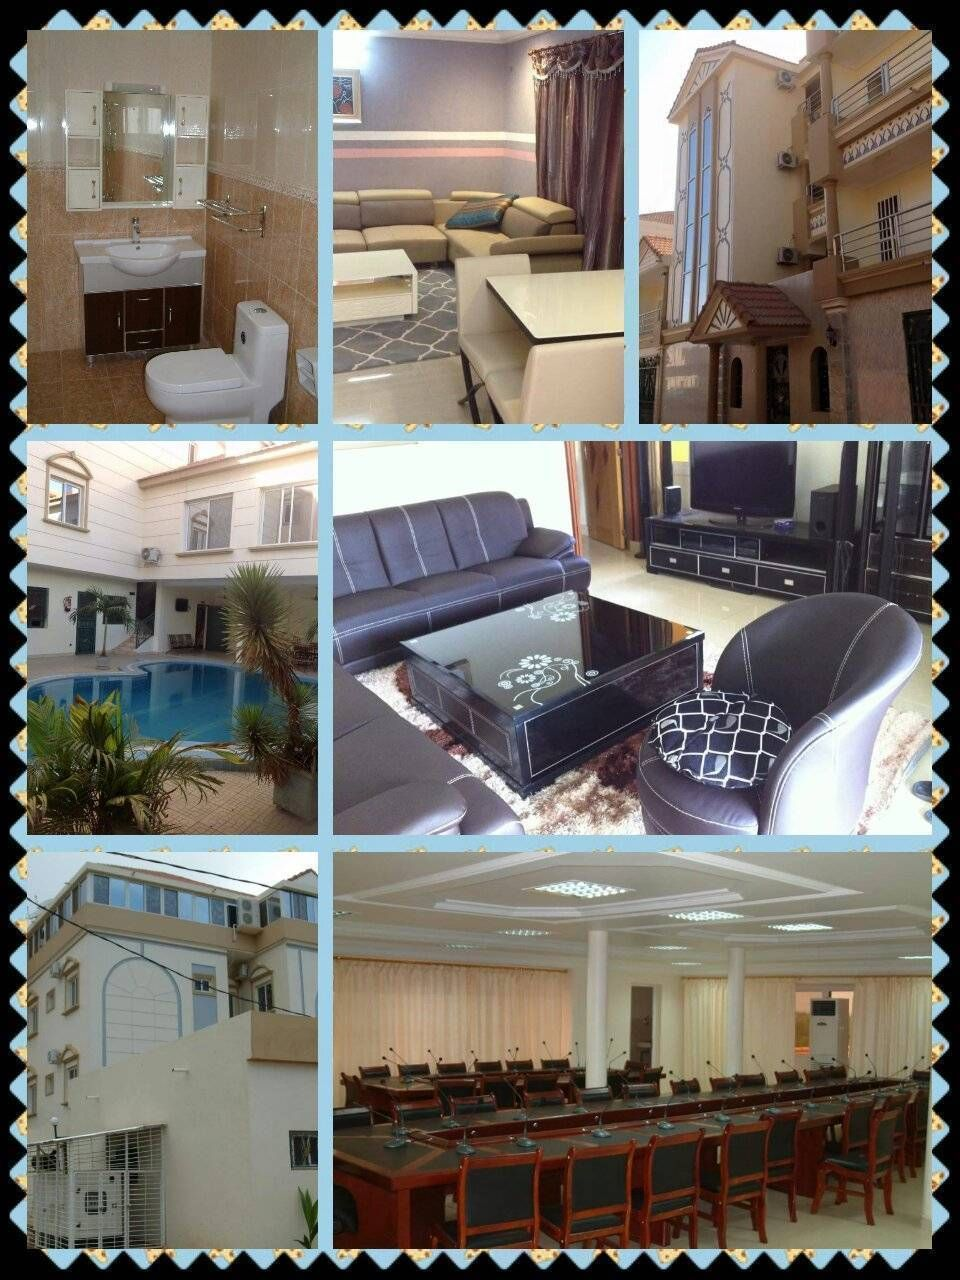 Star Residence, Bamako Koura, Mali, famous holiday locations and destinations with hostels in Bamako Koura